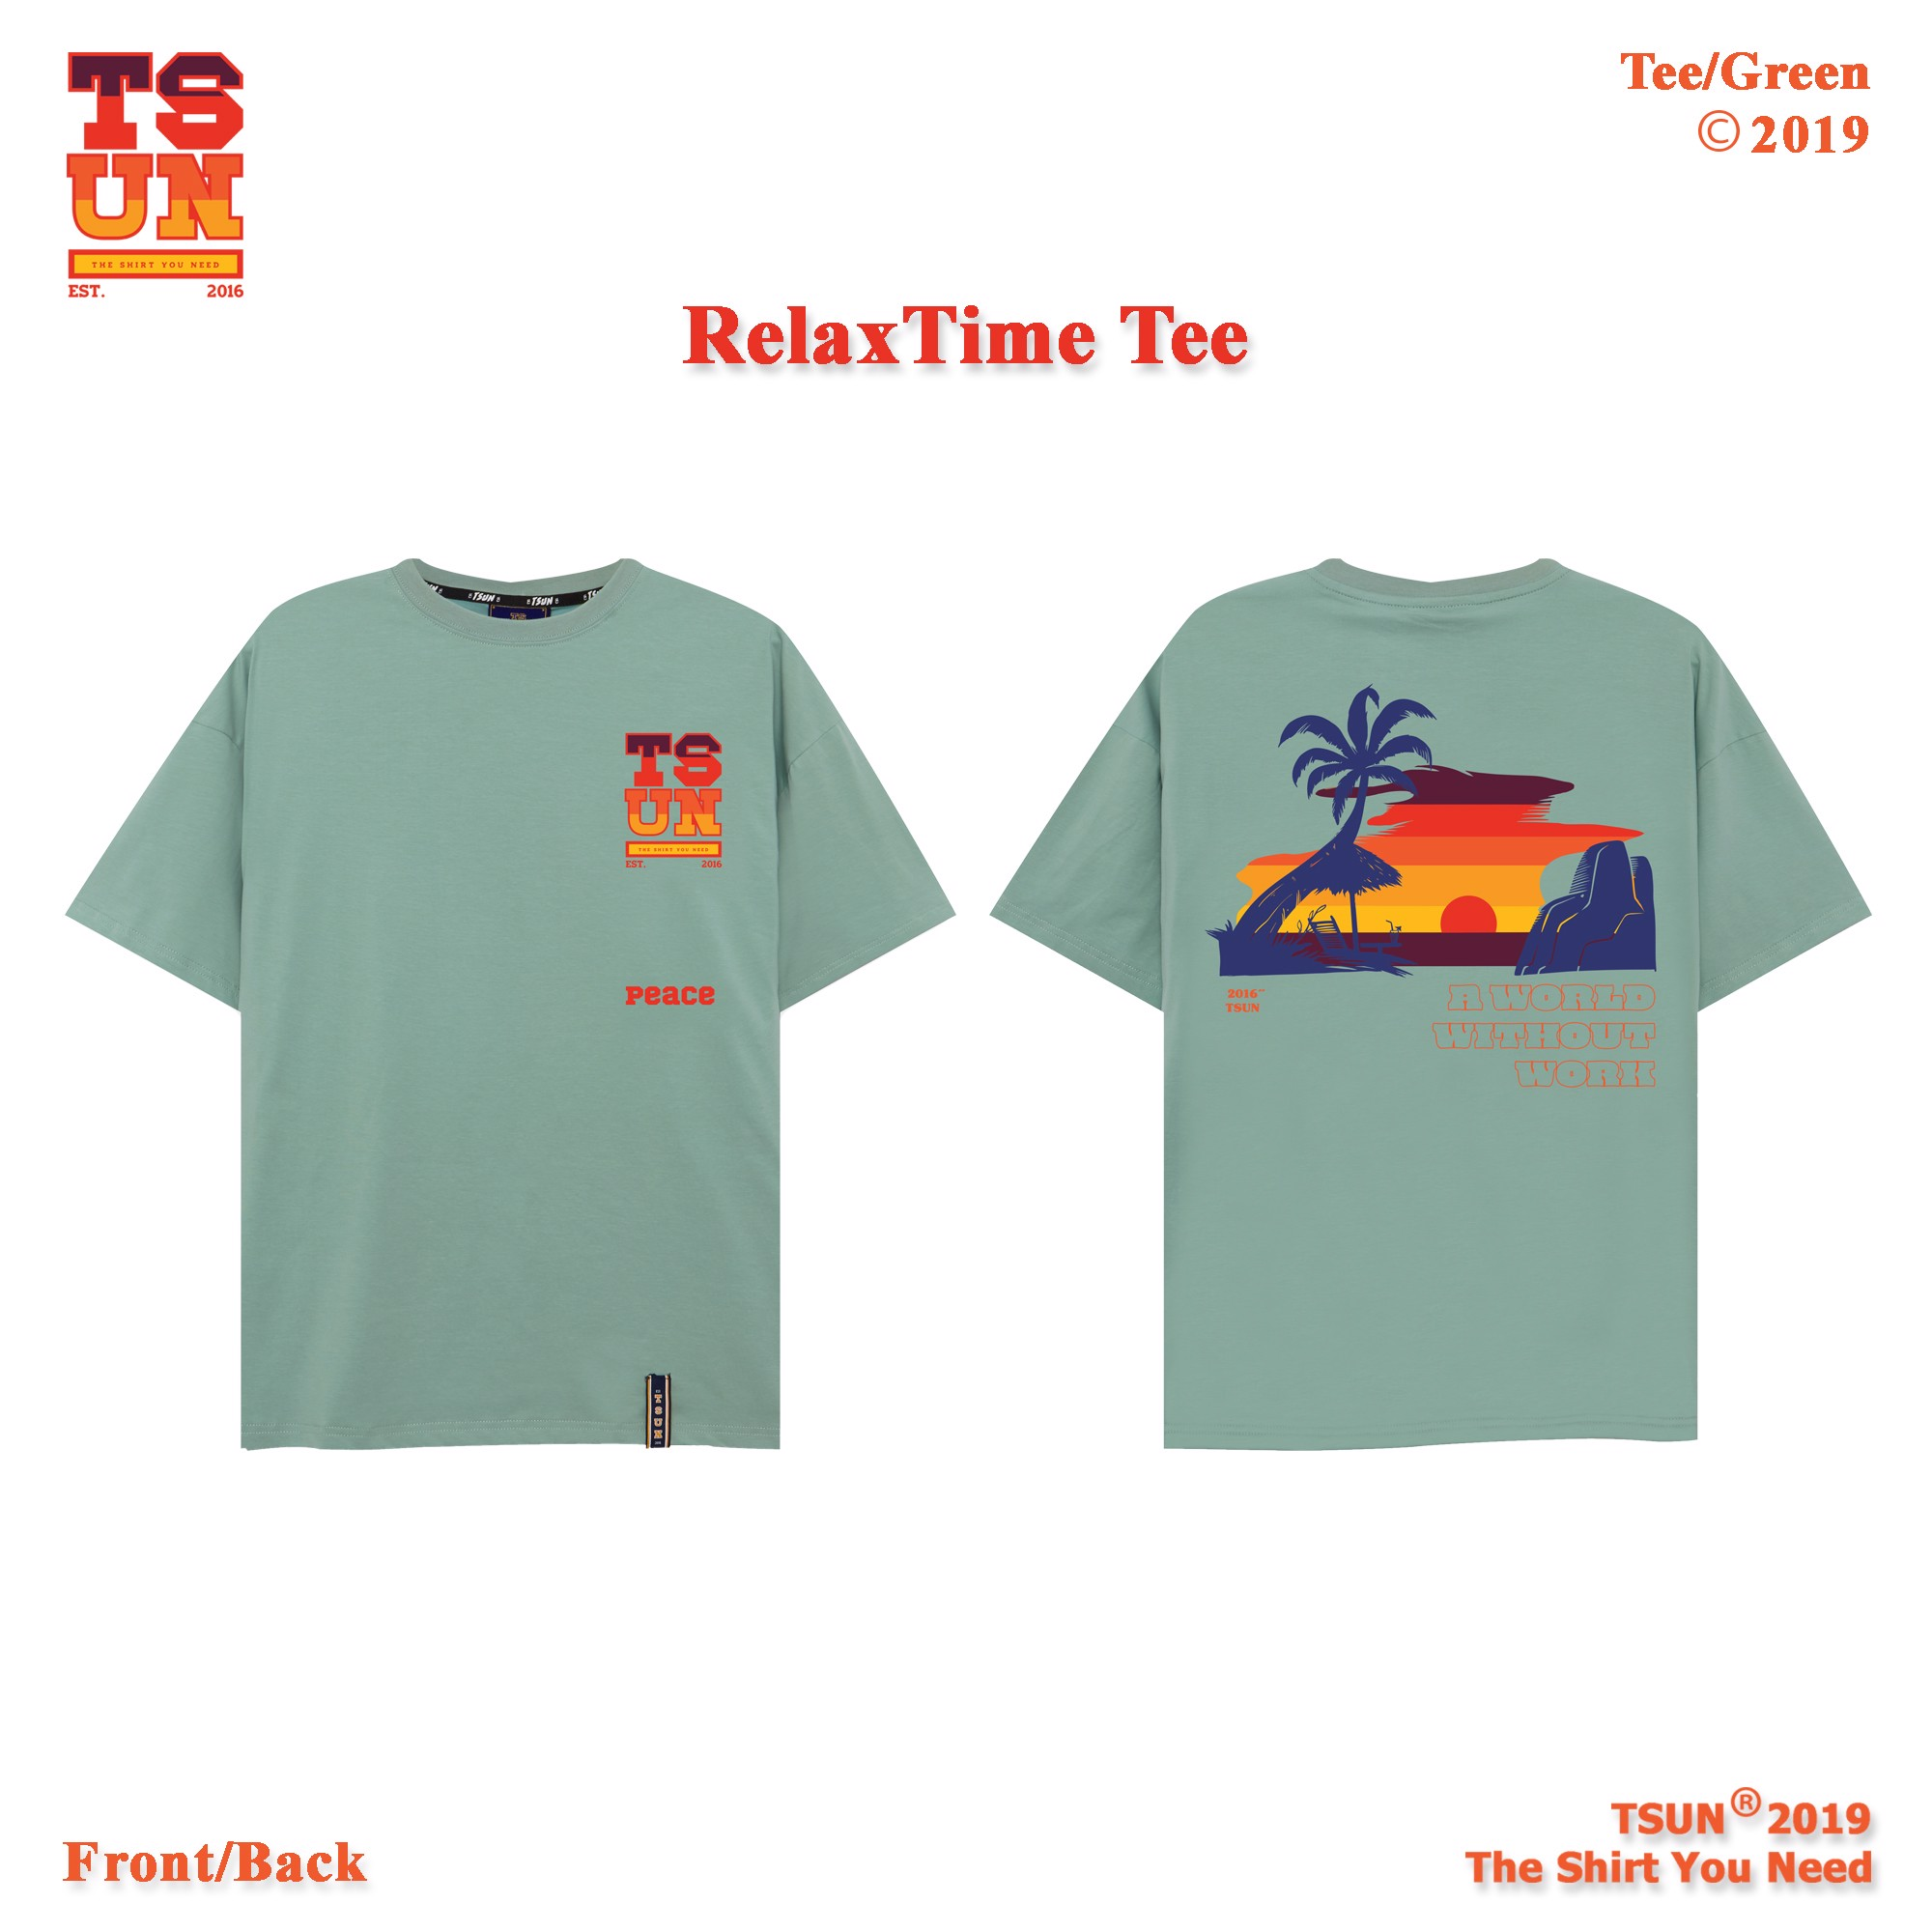 Relax Time Tee/Green